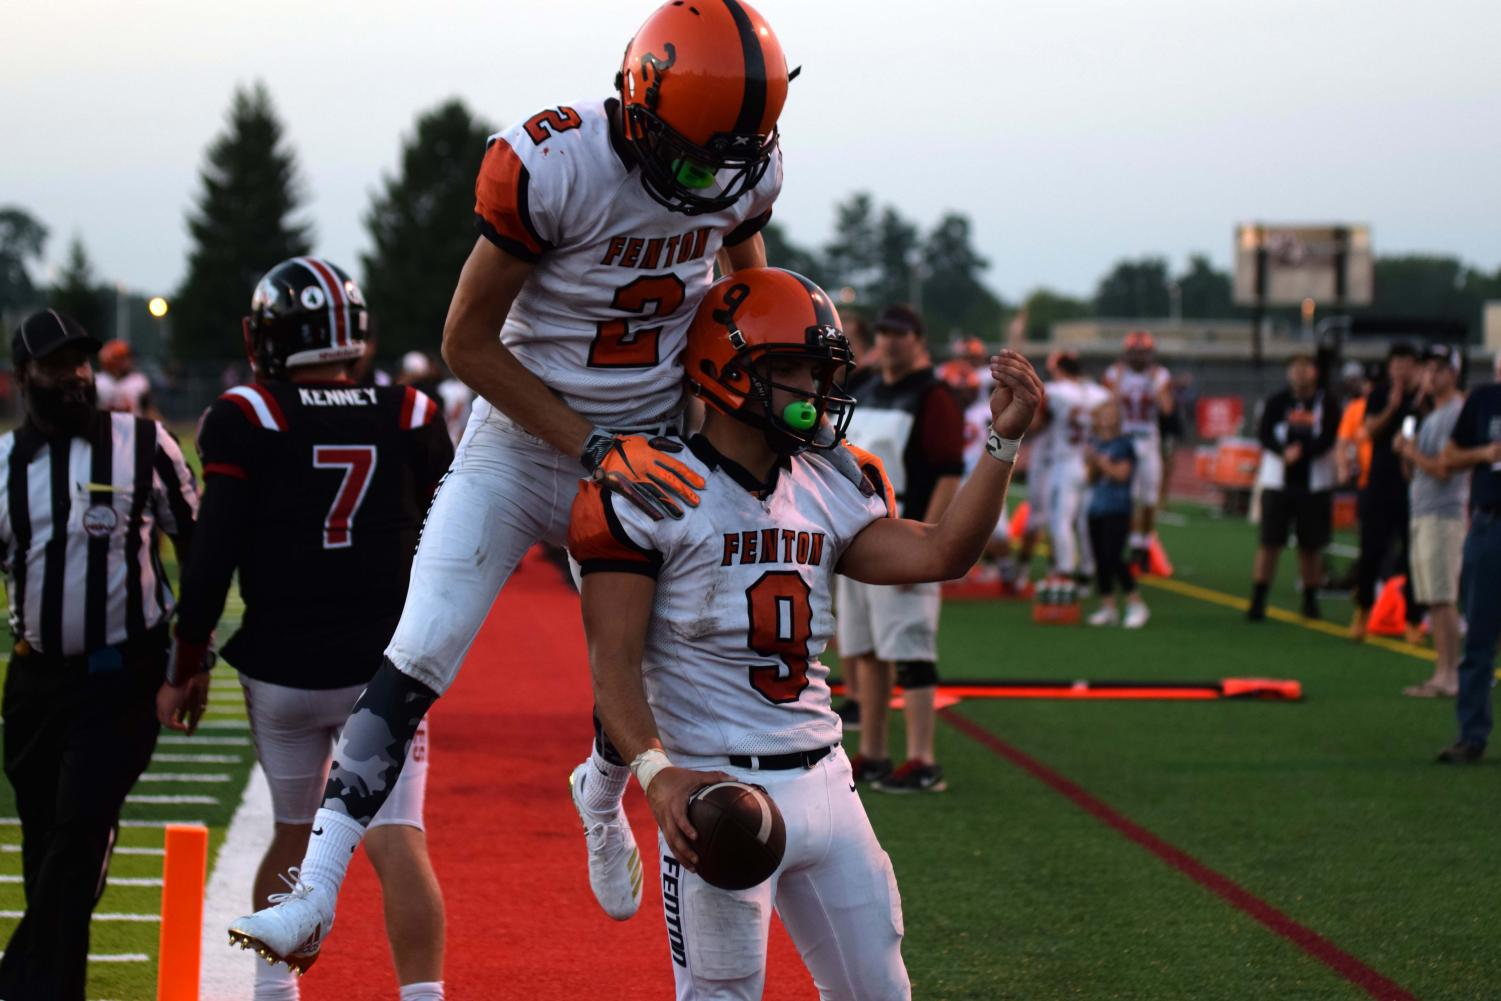 After scoring a touchdown, seniors Spencer Rivera and Cameron Steeves celebrate the six points on Linden. Rivera led the Tigers with multiple touchdowns to help them secure victory over the Linden Eagles, 34-7.